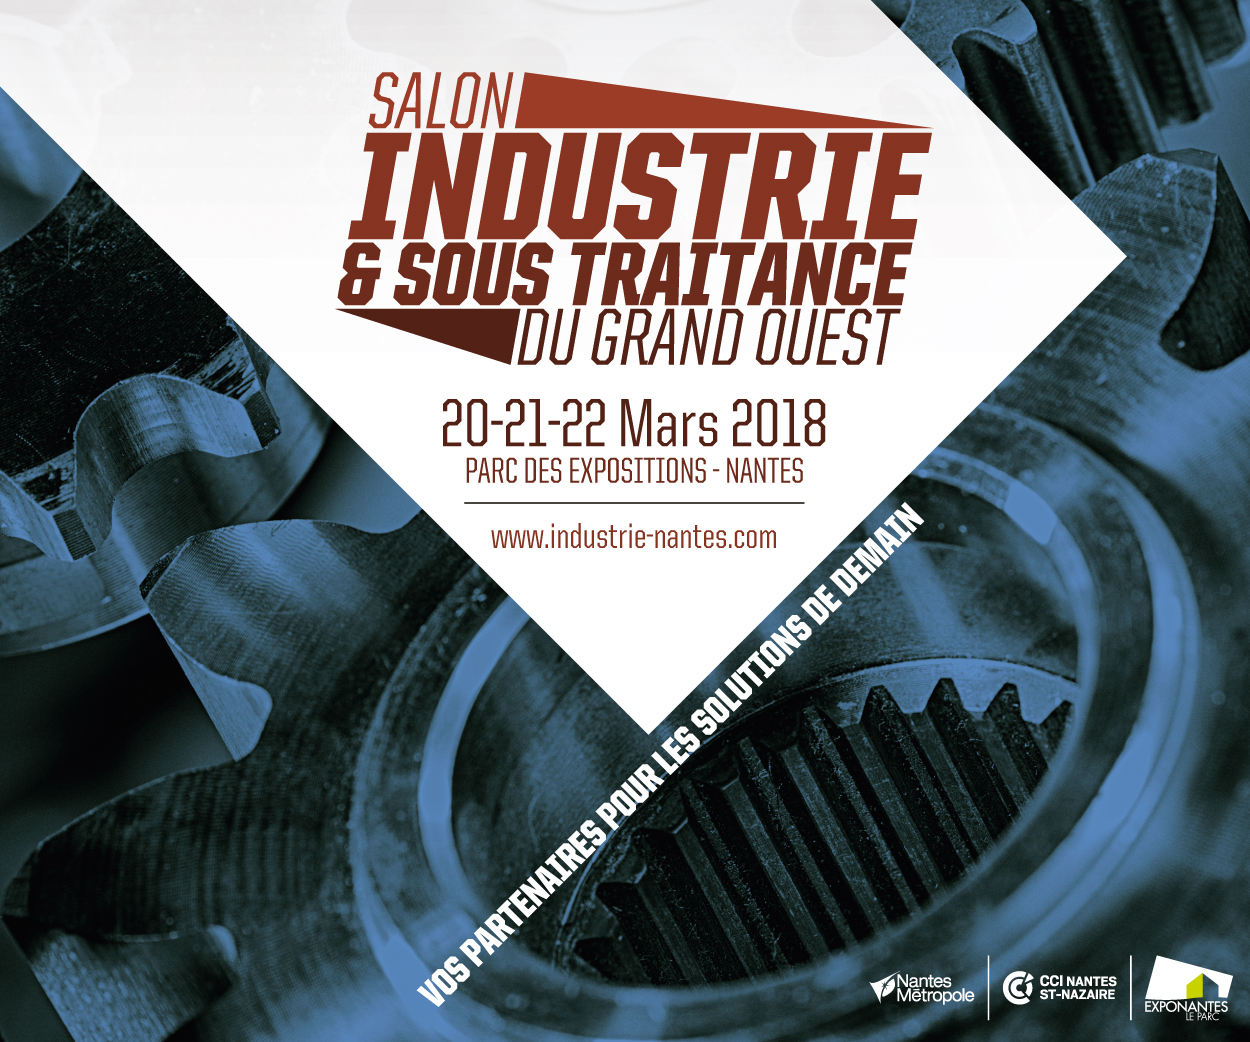 Sous traitance industrielle